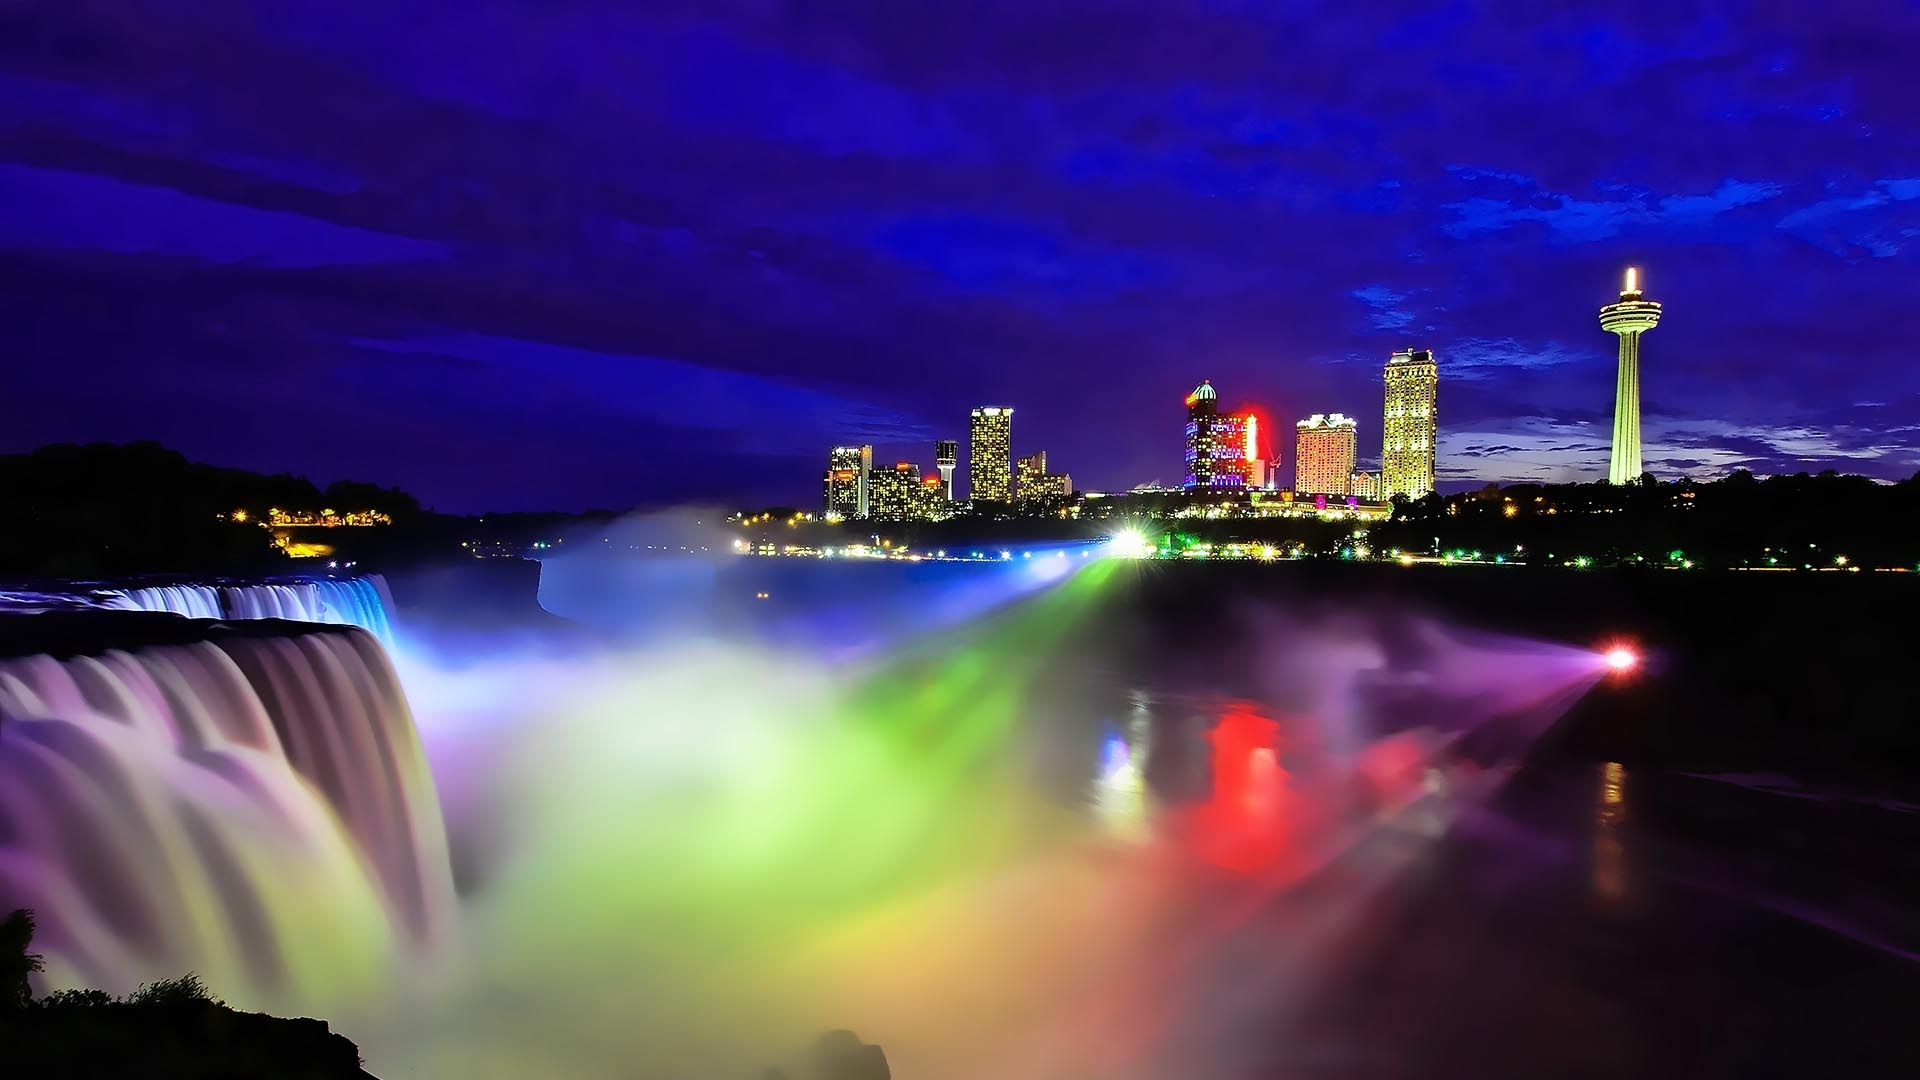 niagara-falls-at-night – my niagara tours